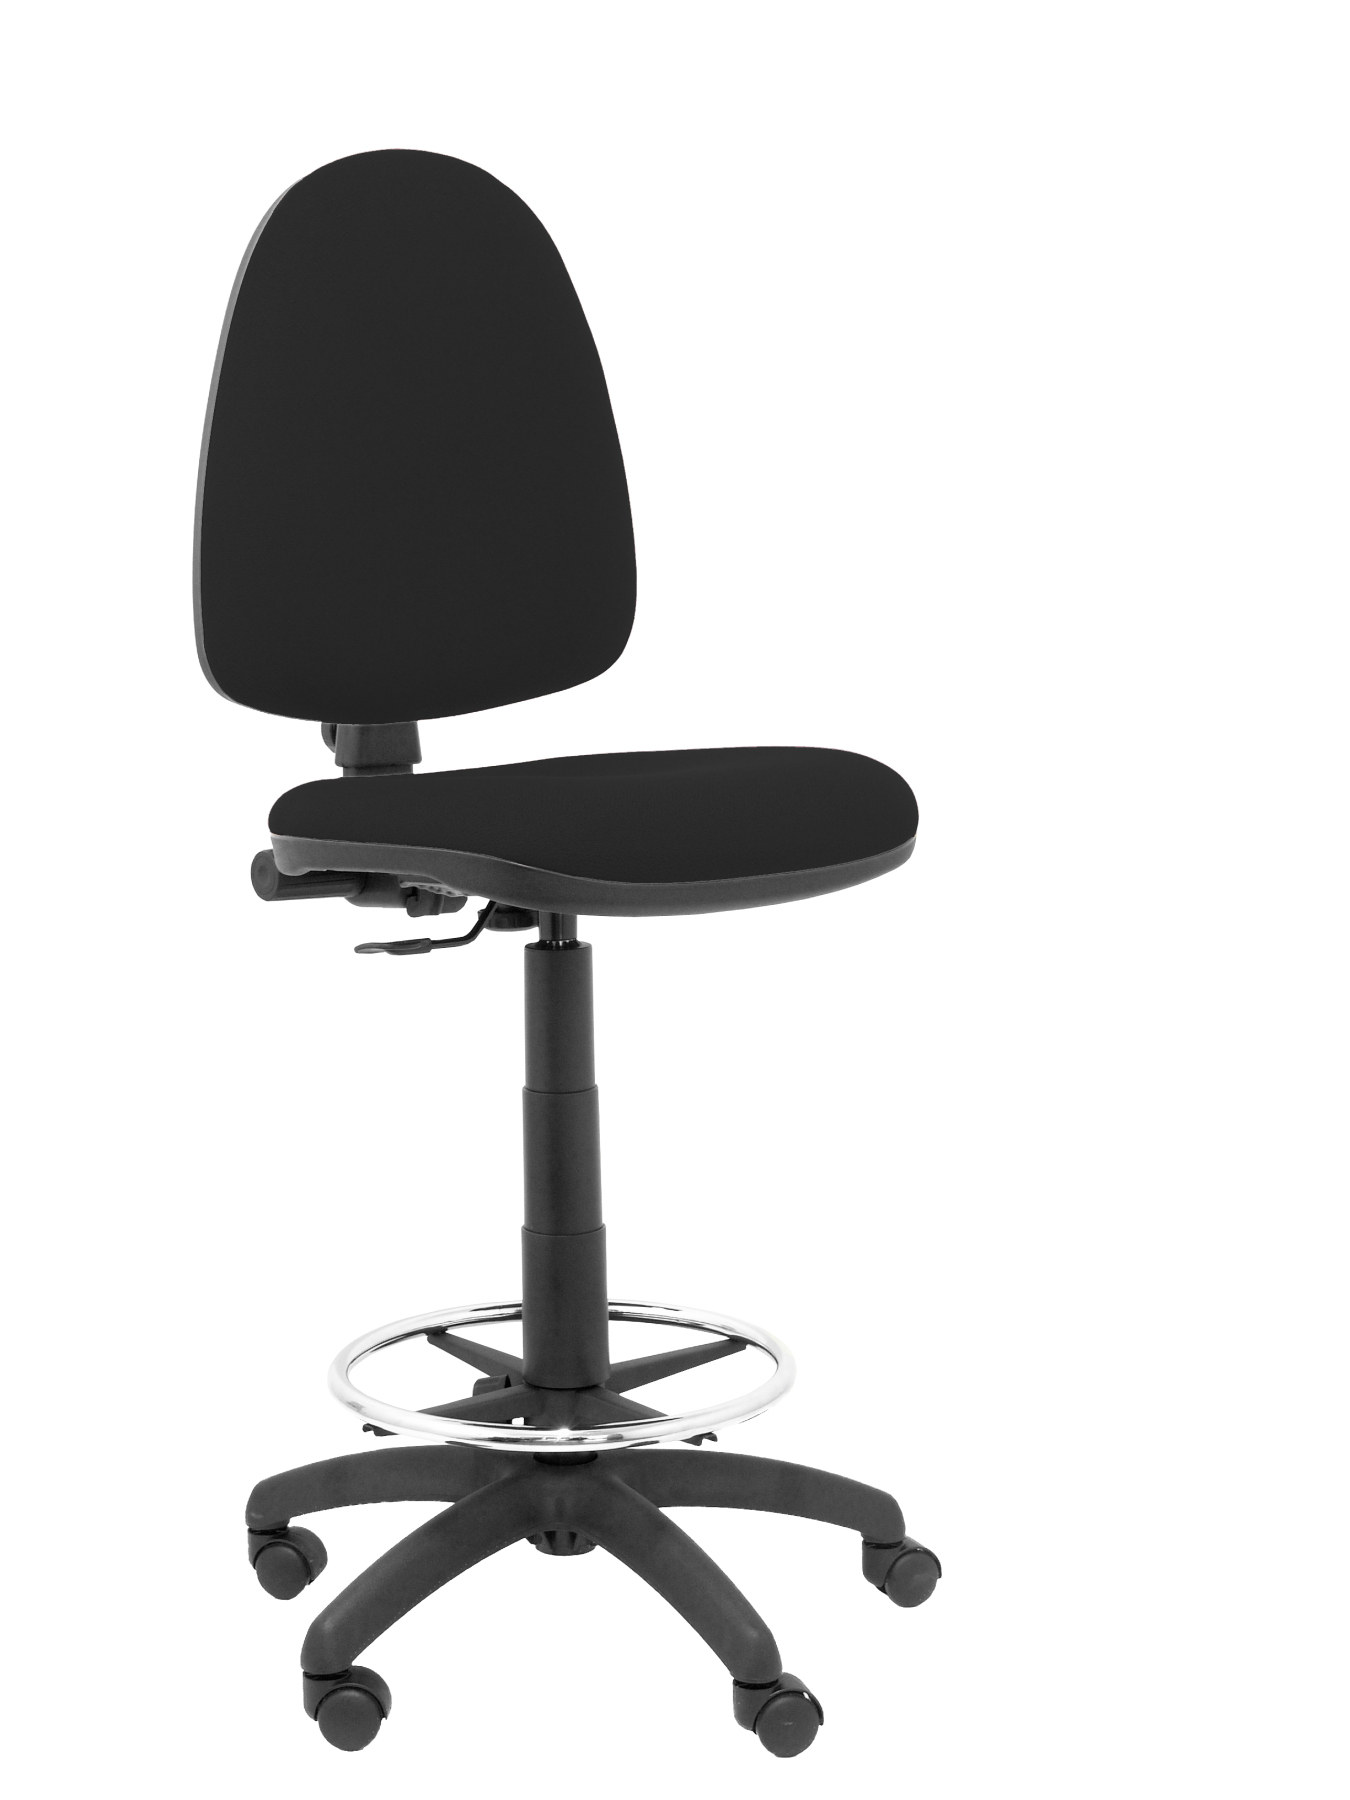 Ergonomic stool with mechanism permanent contact  adjustable height and hoop footrest Chrome Seat and res|  - title=